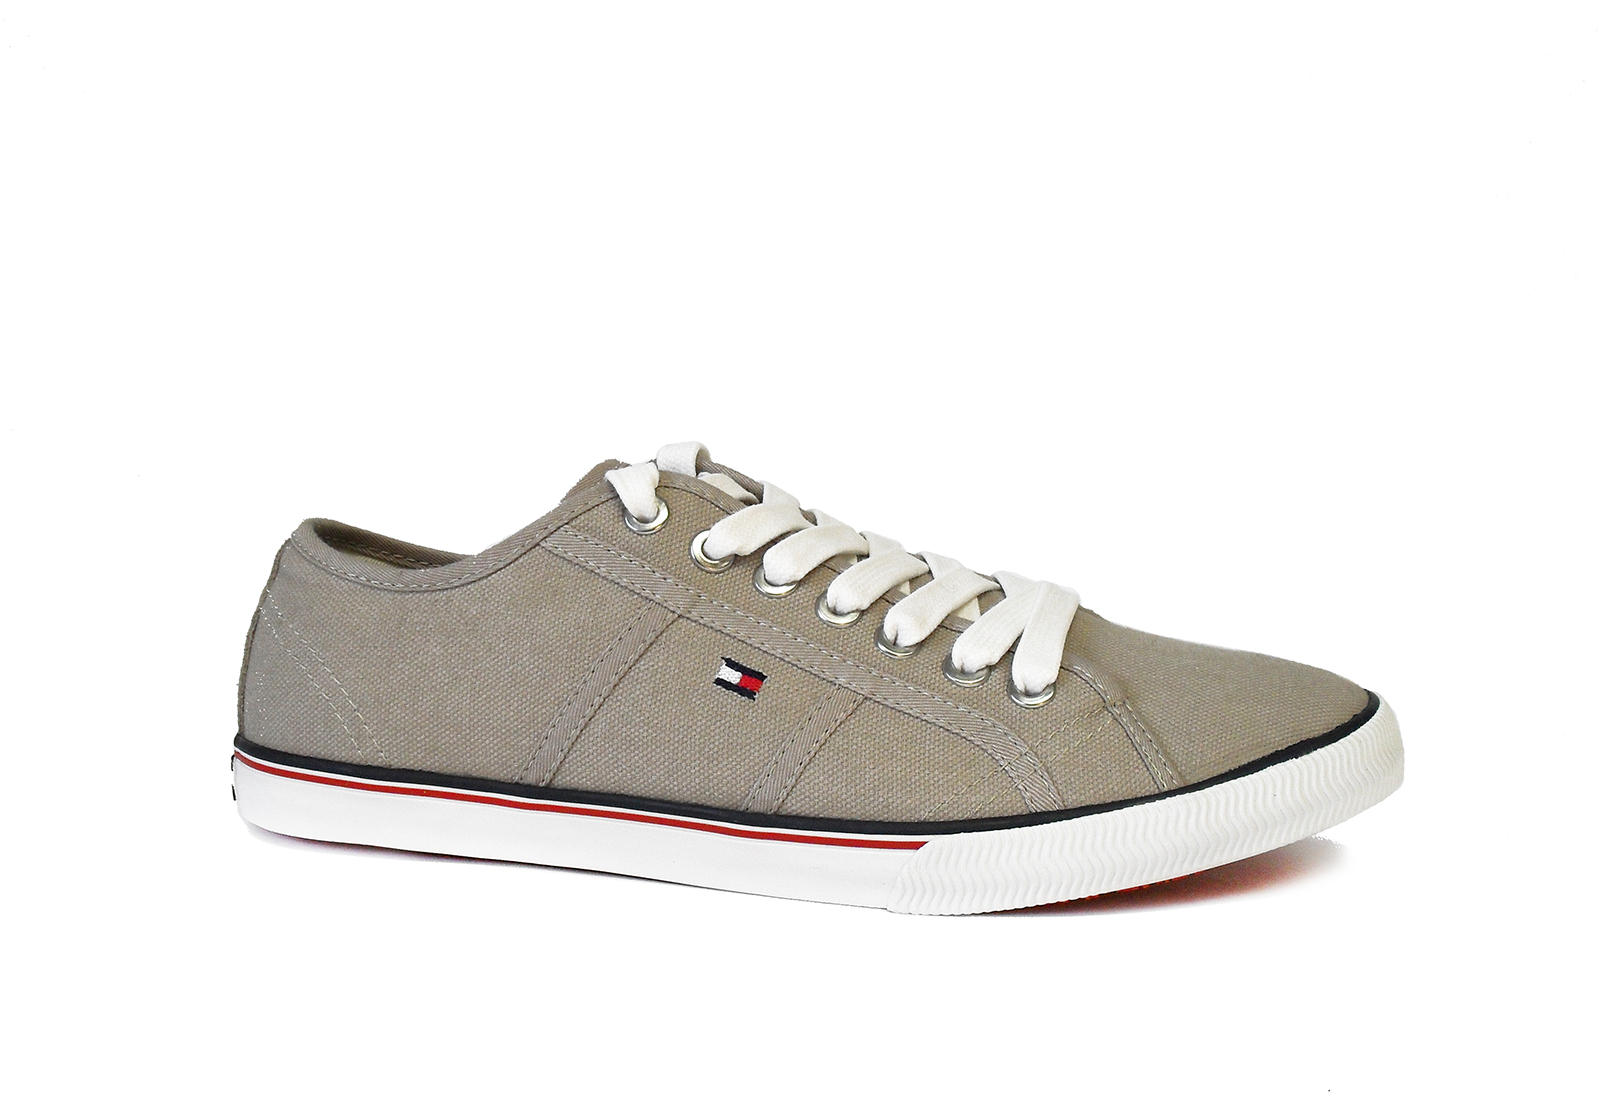 Tommy Hilfiger Tornacipő - Vantage 2a - 13S-5298-955 - Office Shoes ... 02b44655f8